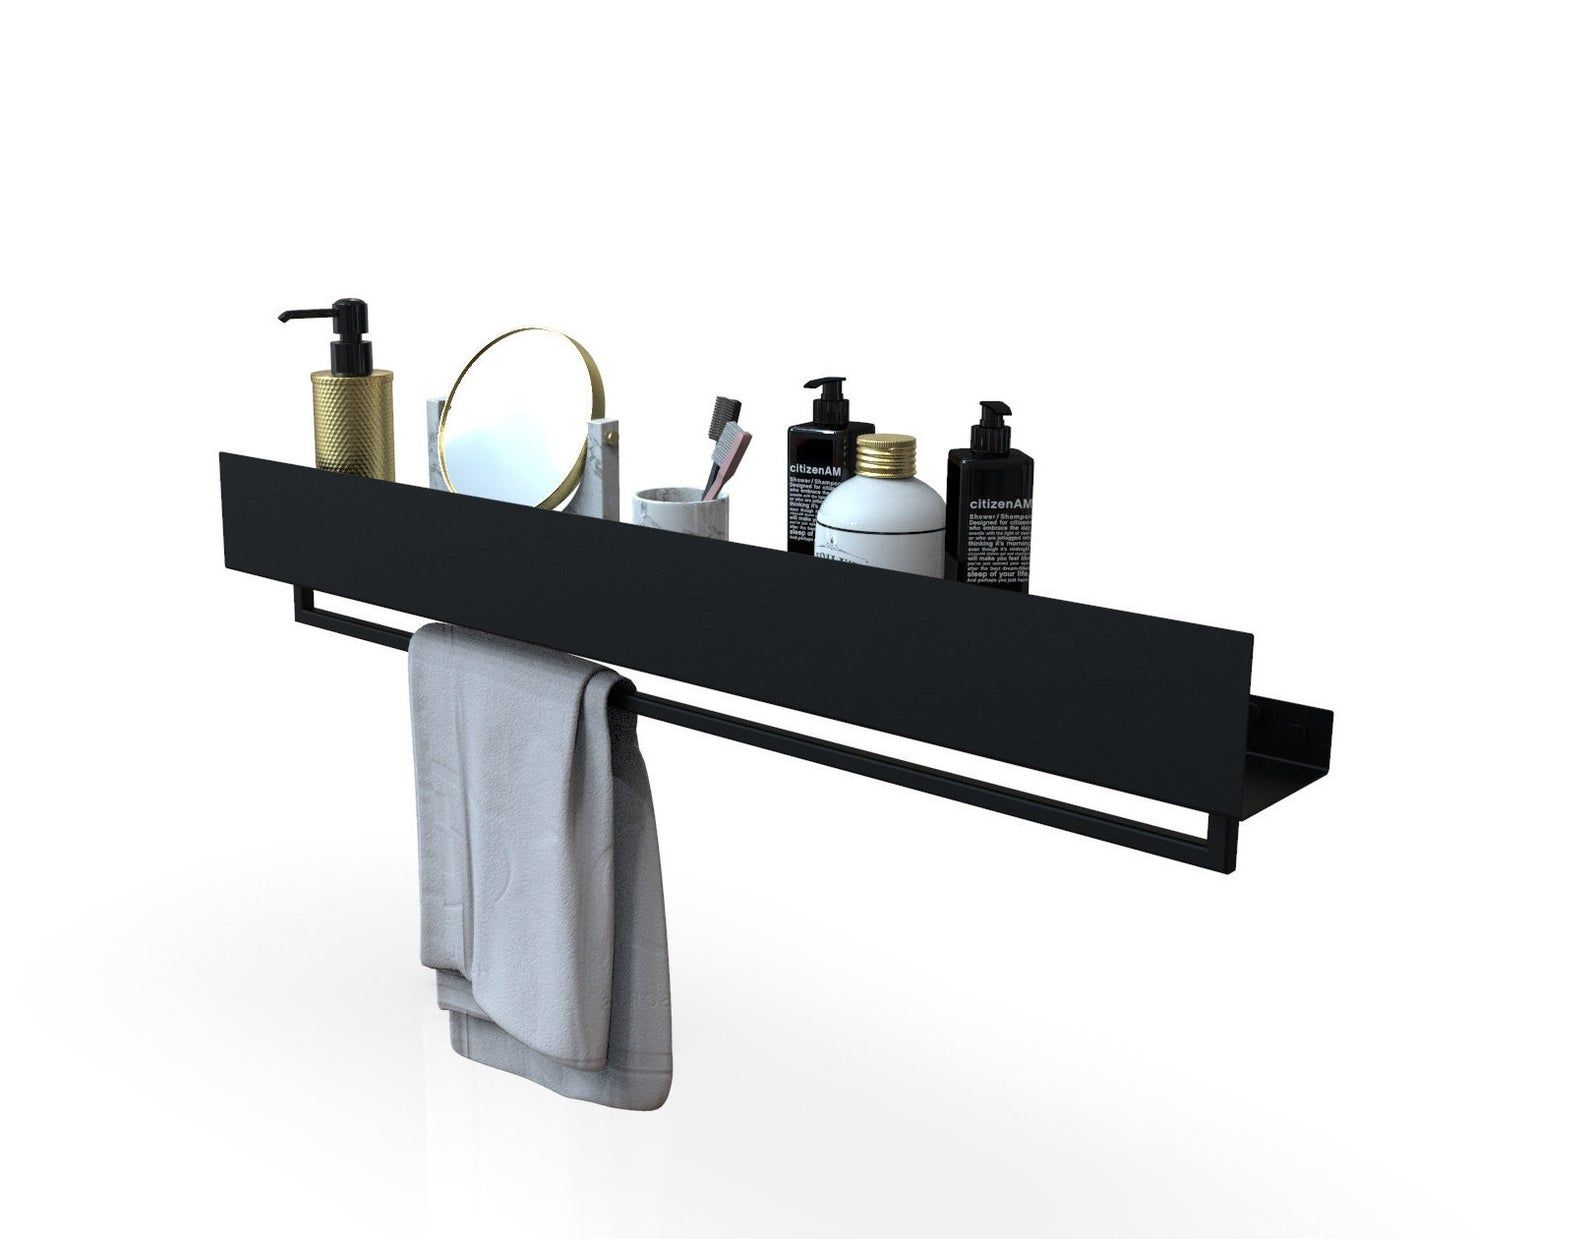 Black Bathroom Shelf Vasca Etsy In 2020 Black Bathroom Bathroom Shelves Shower Shelves